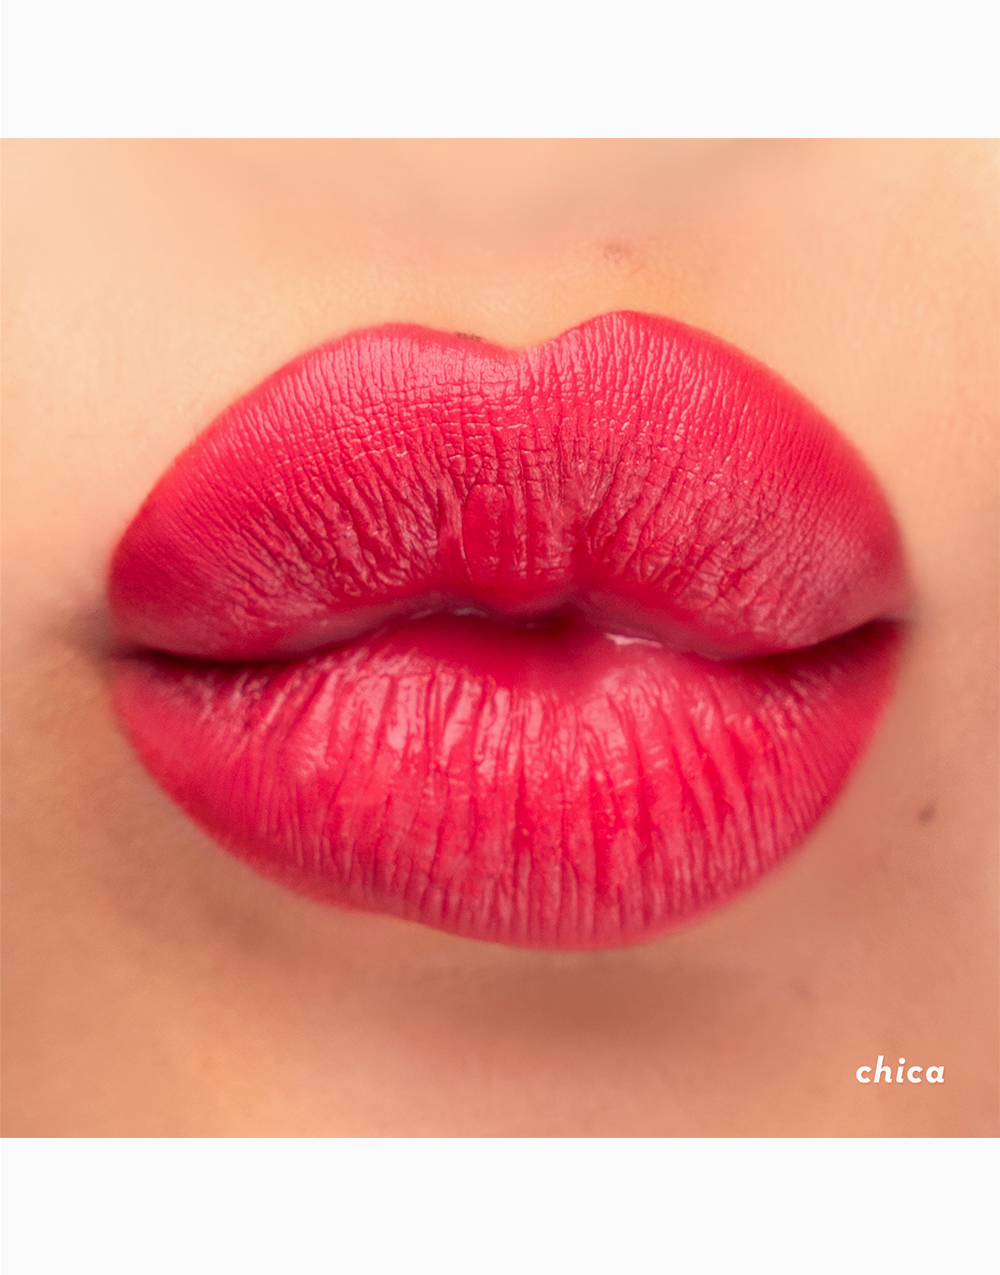 Lip Mallow Mousse by Happy Skin | Chica